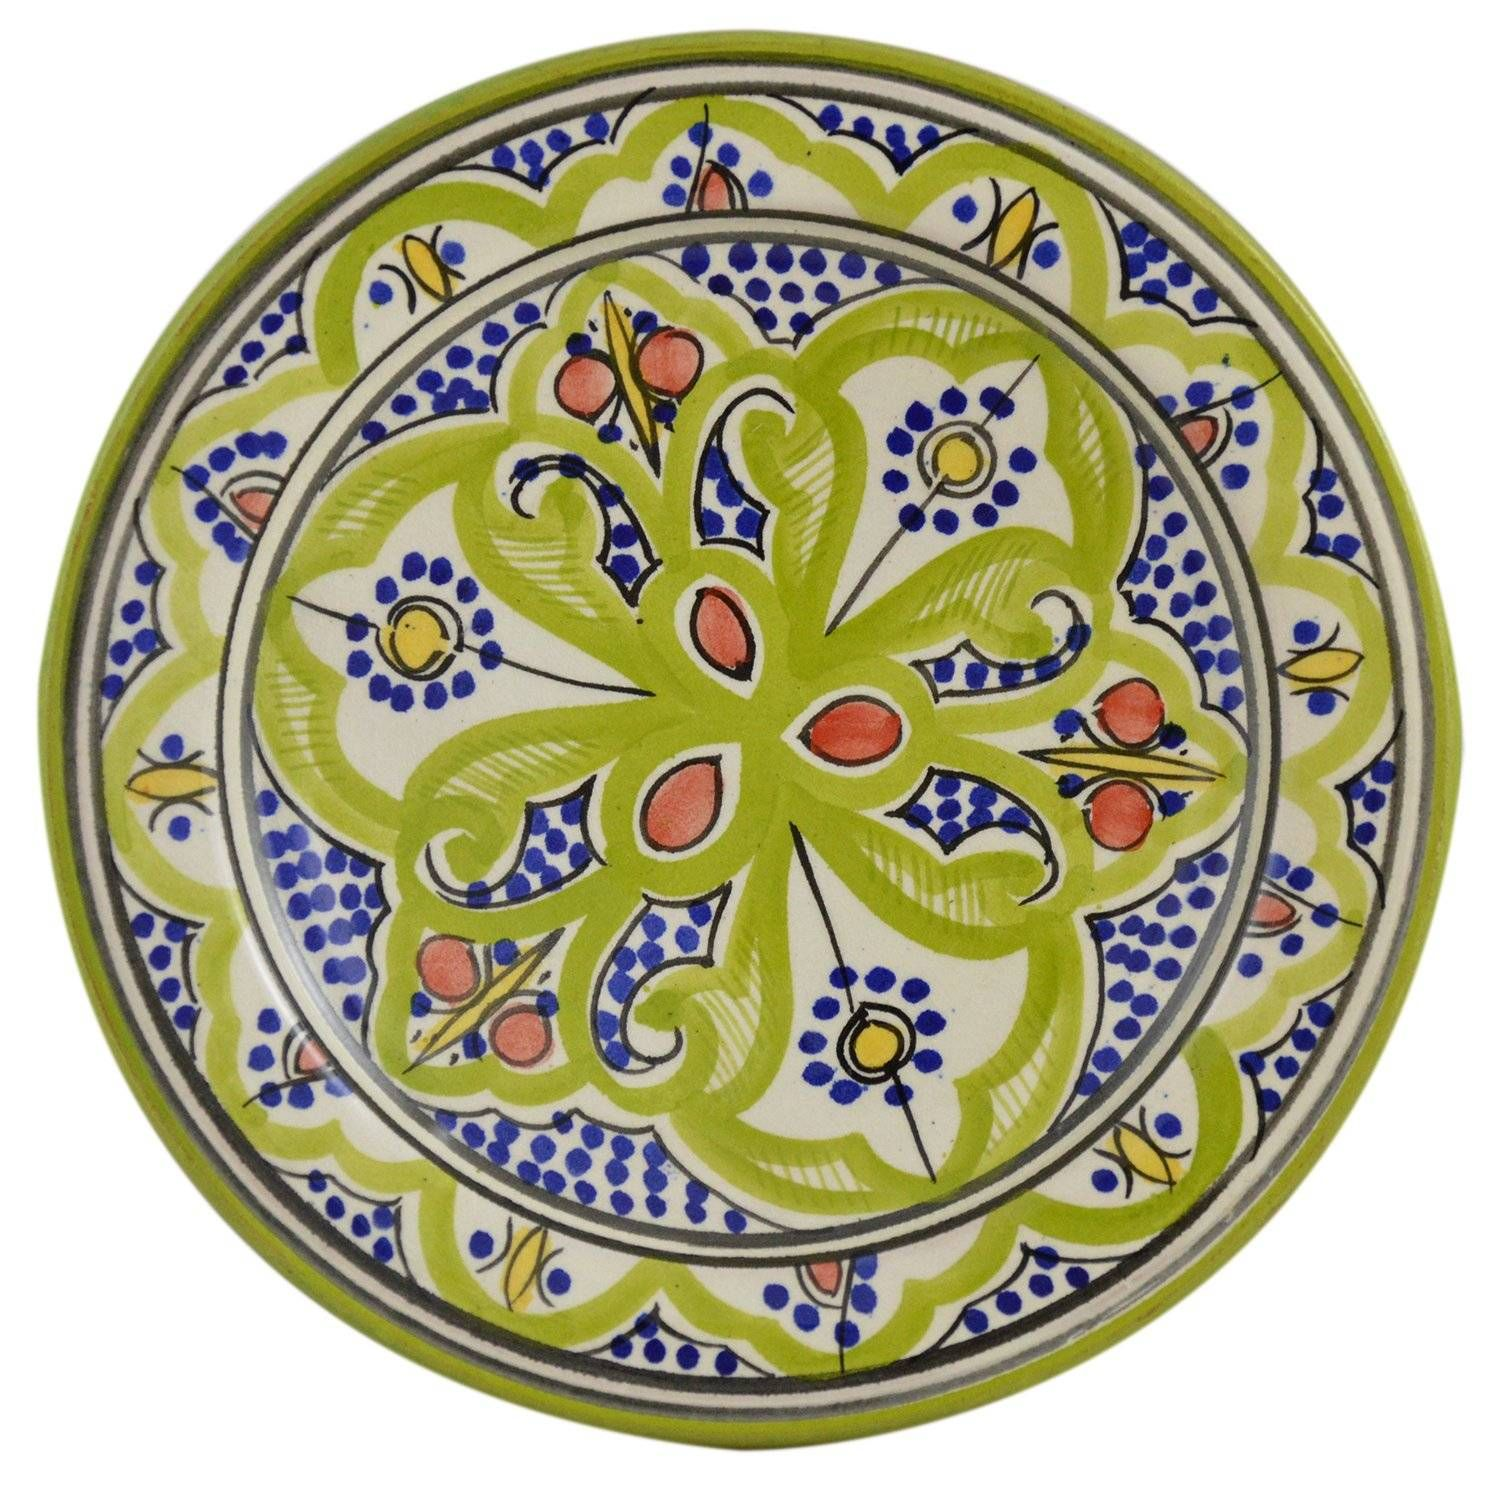 Picturesque Moroccan Decorative Wall Plates With Images Plates